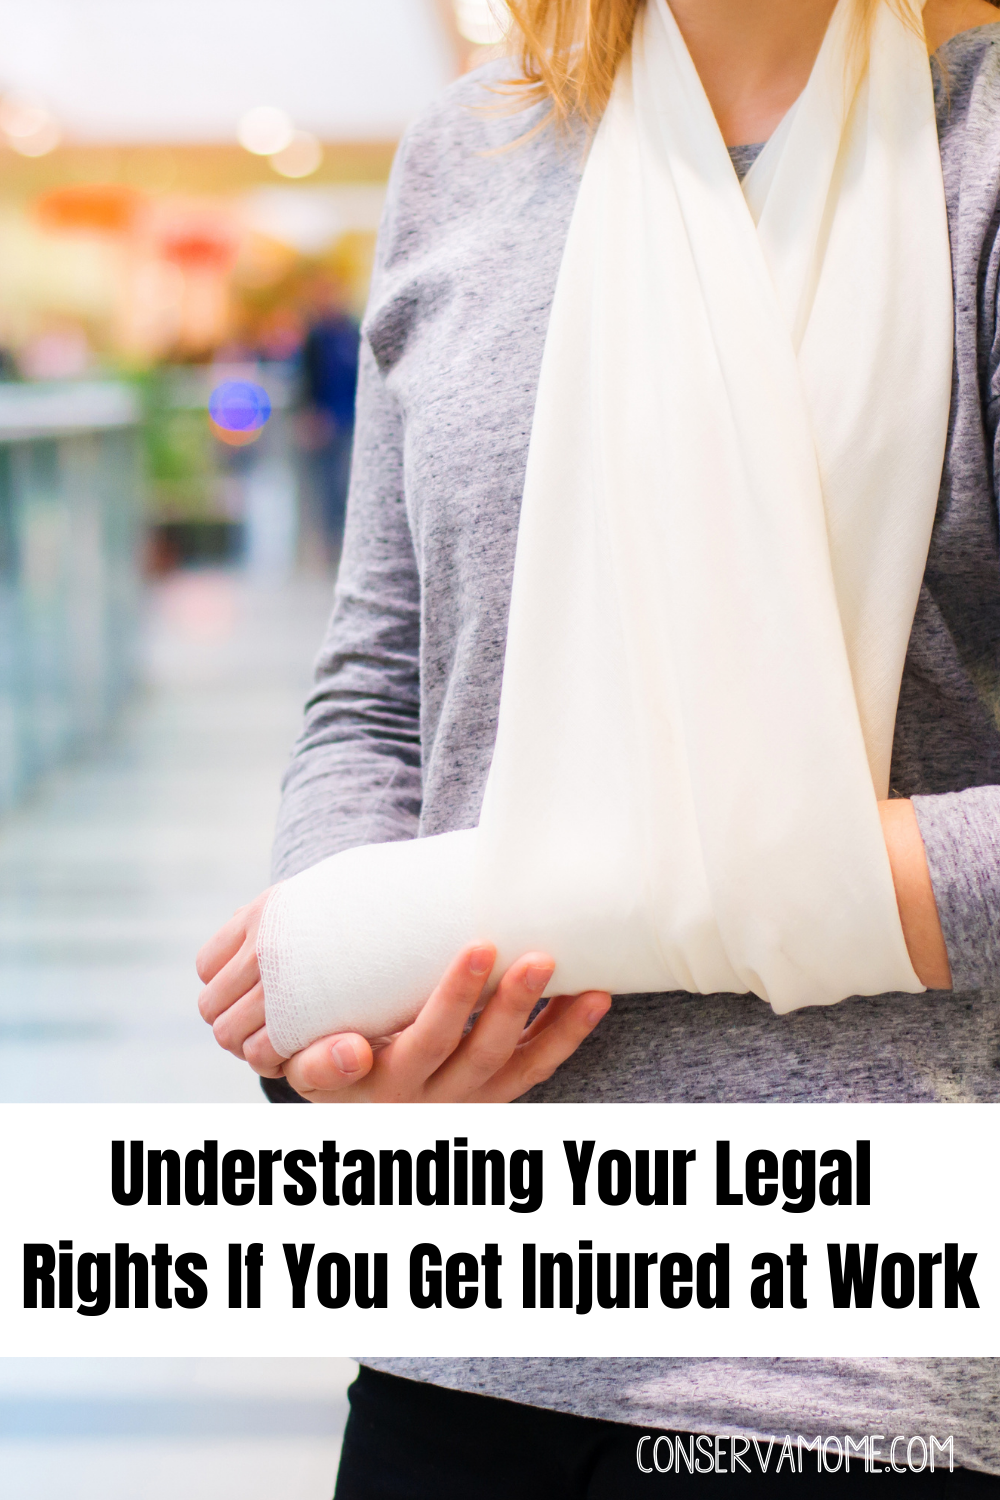 Understanding Your Legal Rights If You Get Injured at Work